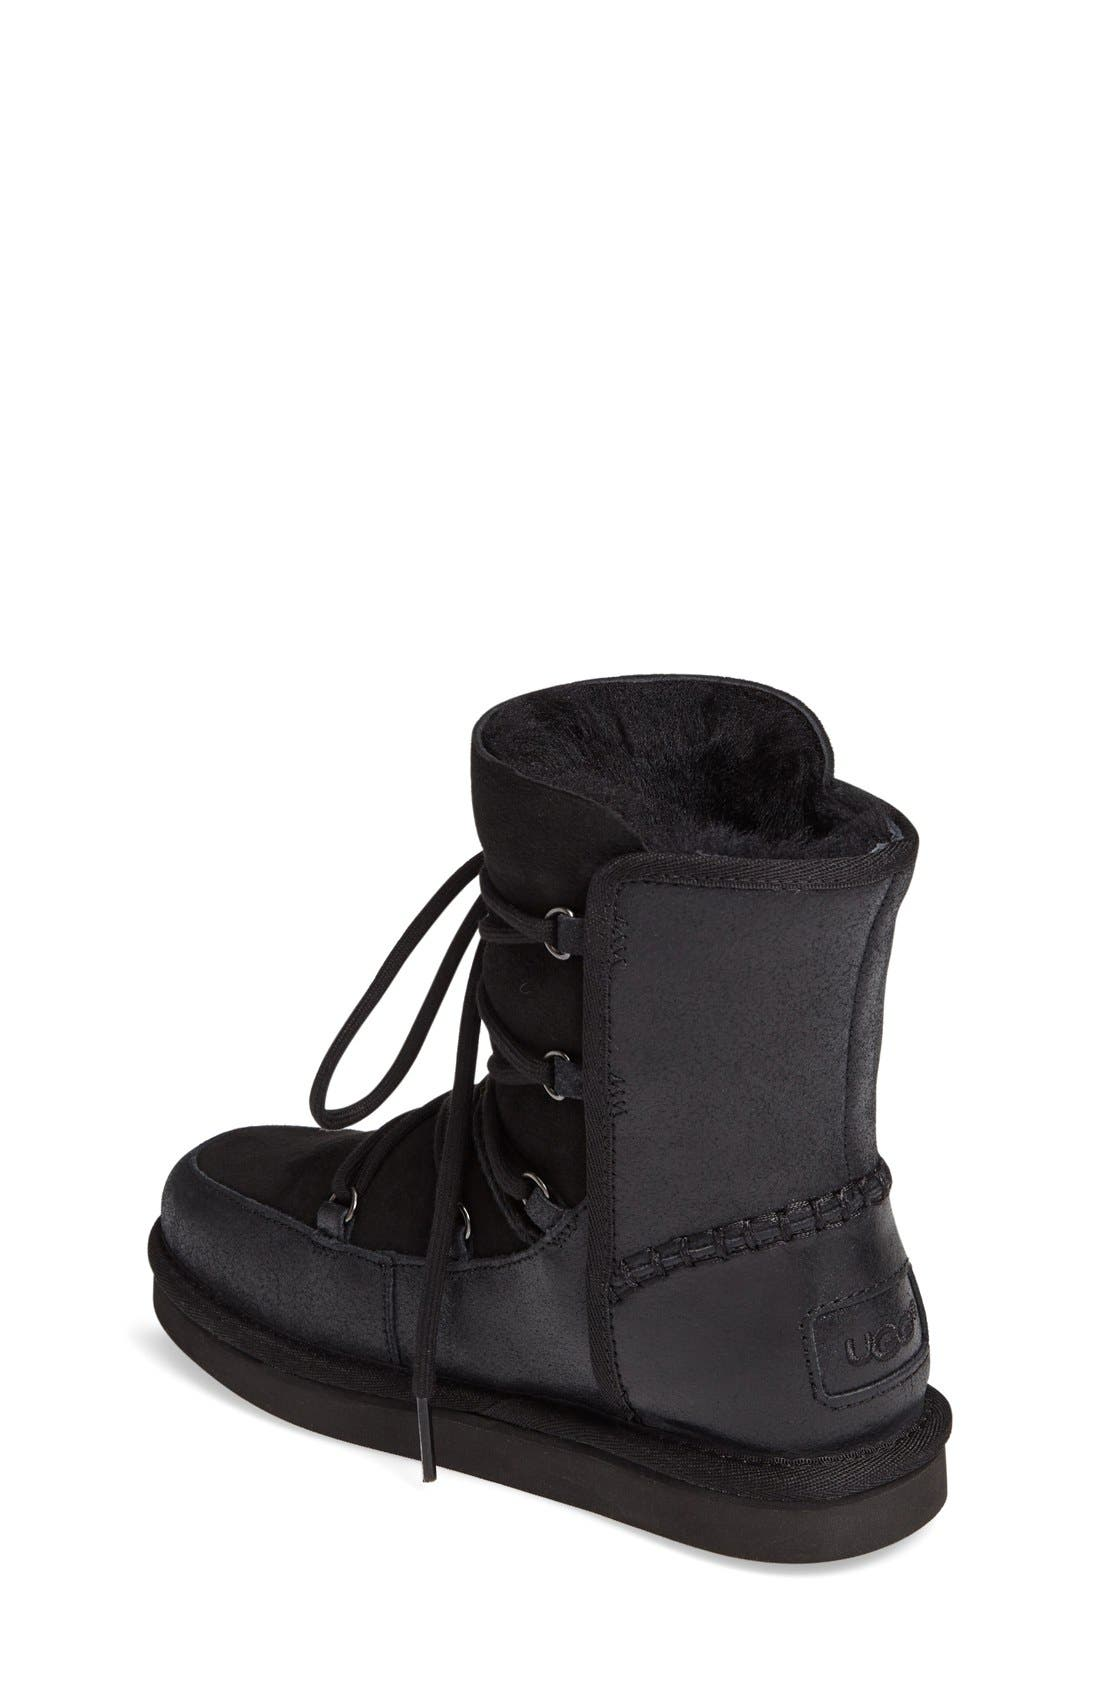 Eliss Water Resistant Suede Boot,                             Alternate thumbnail 2, color,                             Black Suede